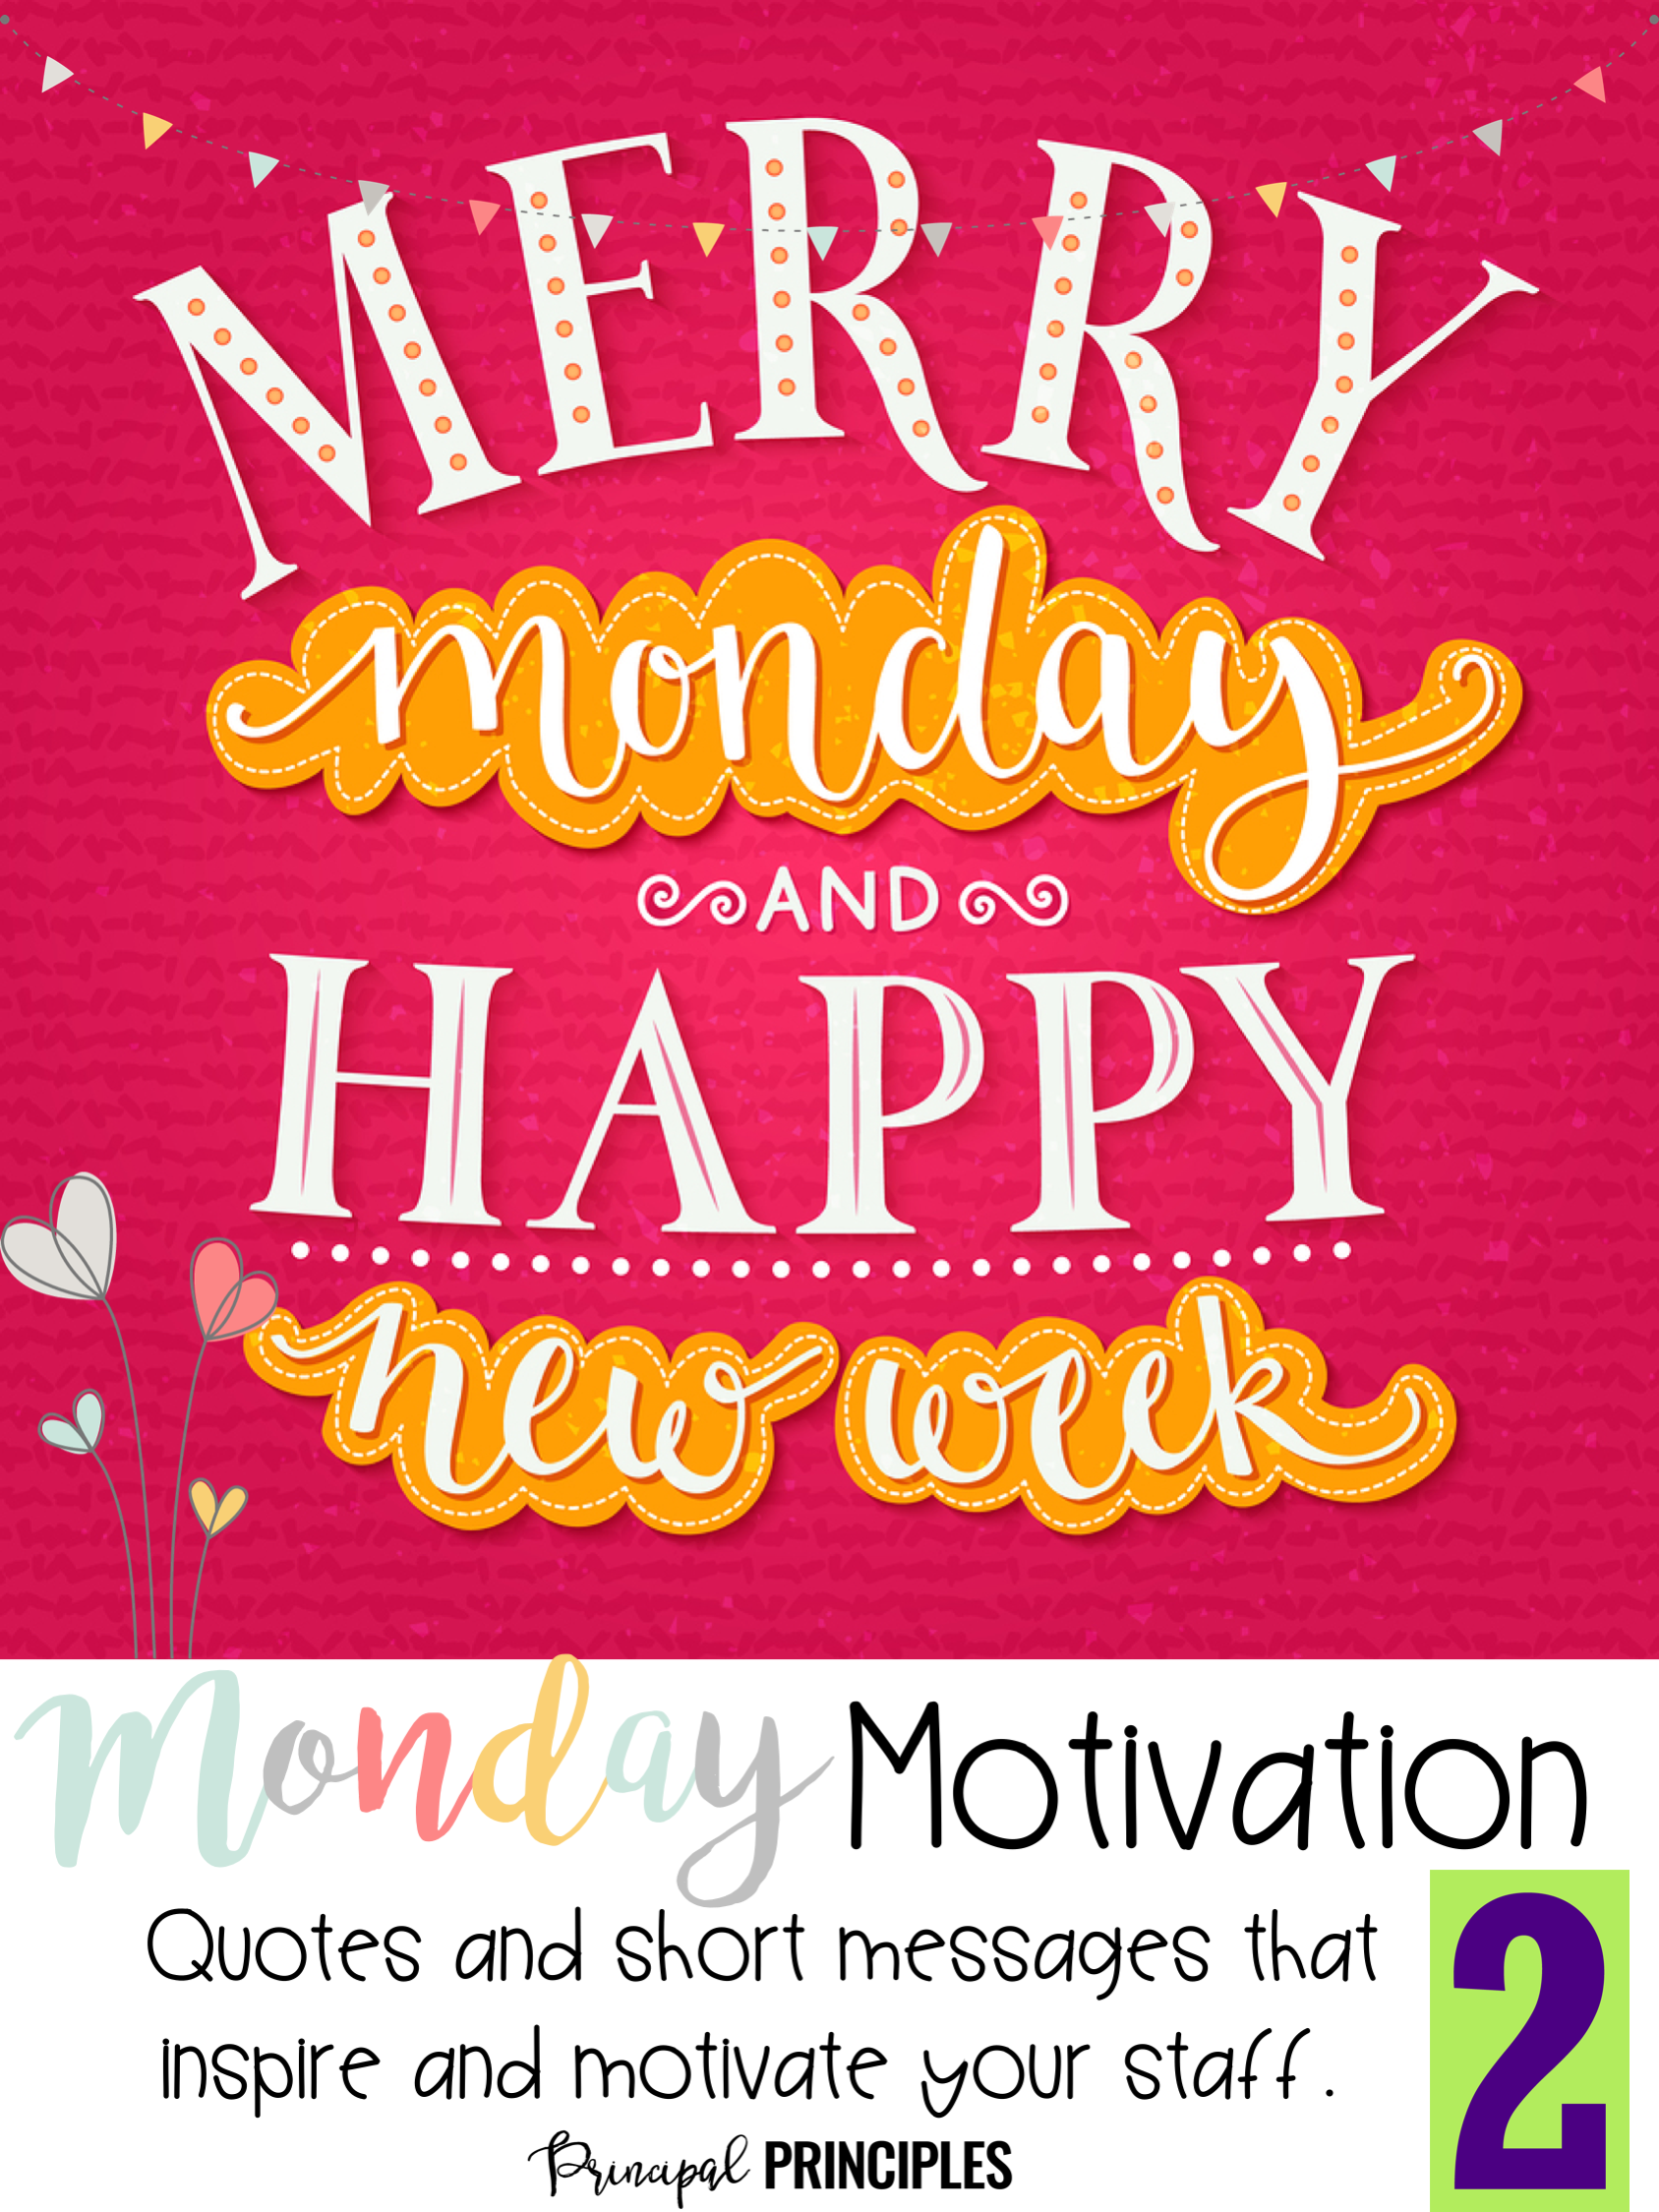 Monday Motivation Short messages and stories to inspire